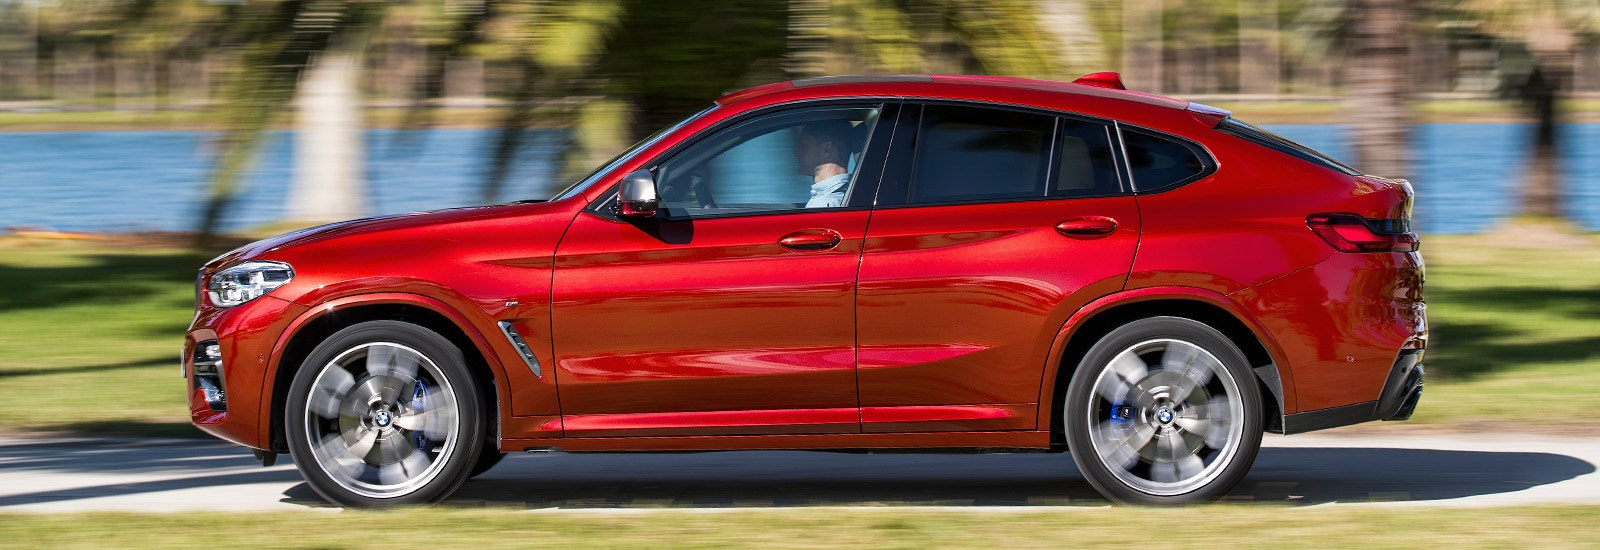 2018 Bmw X4 Price Specs And Release Date Carwow